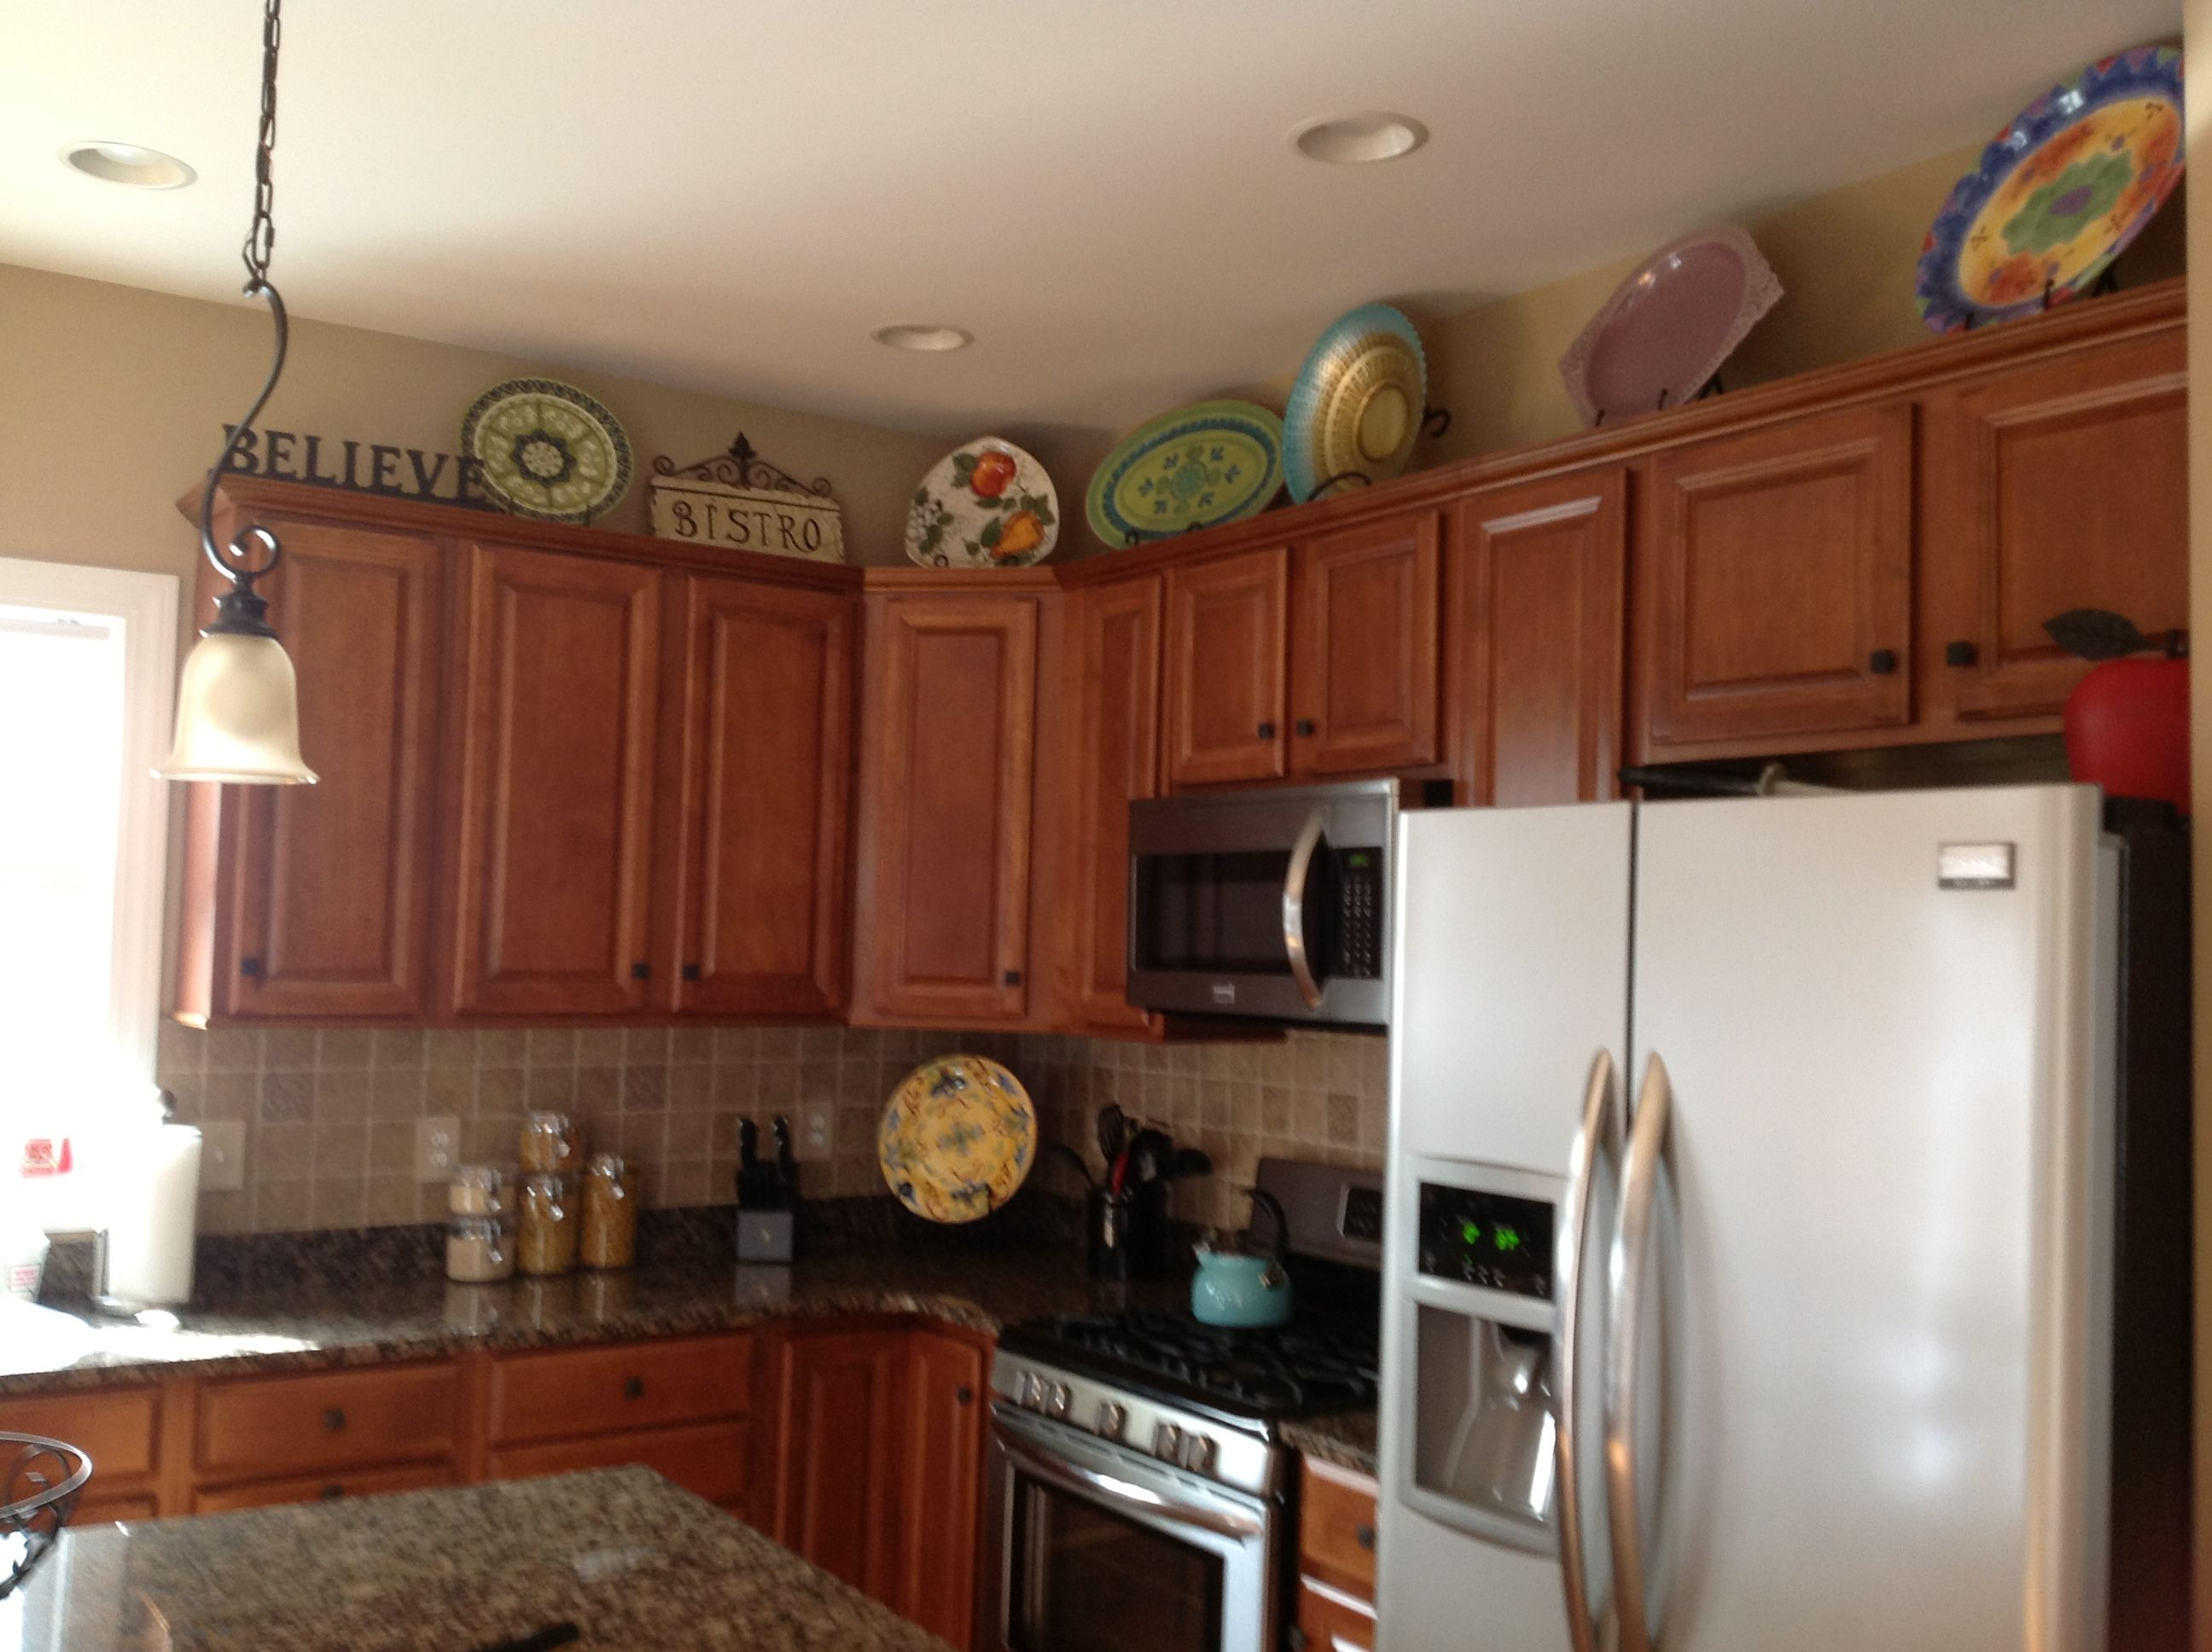 Pin By Amy Teixeira On Design Kitchen Cabinets Decor Kitchen Decor Accents Decorating Above Kitchen Cabinets